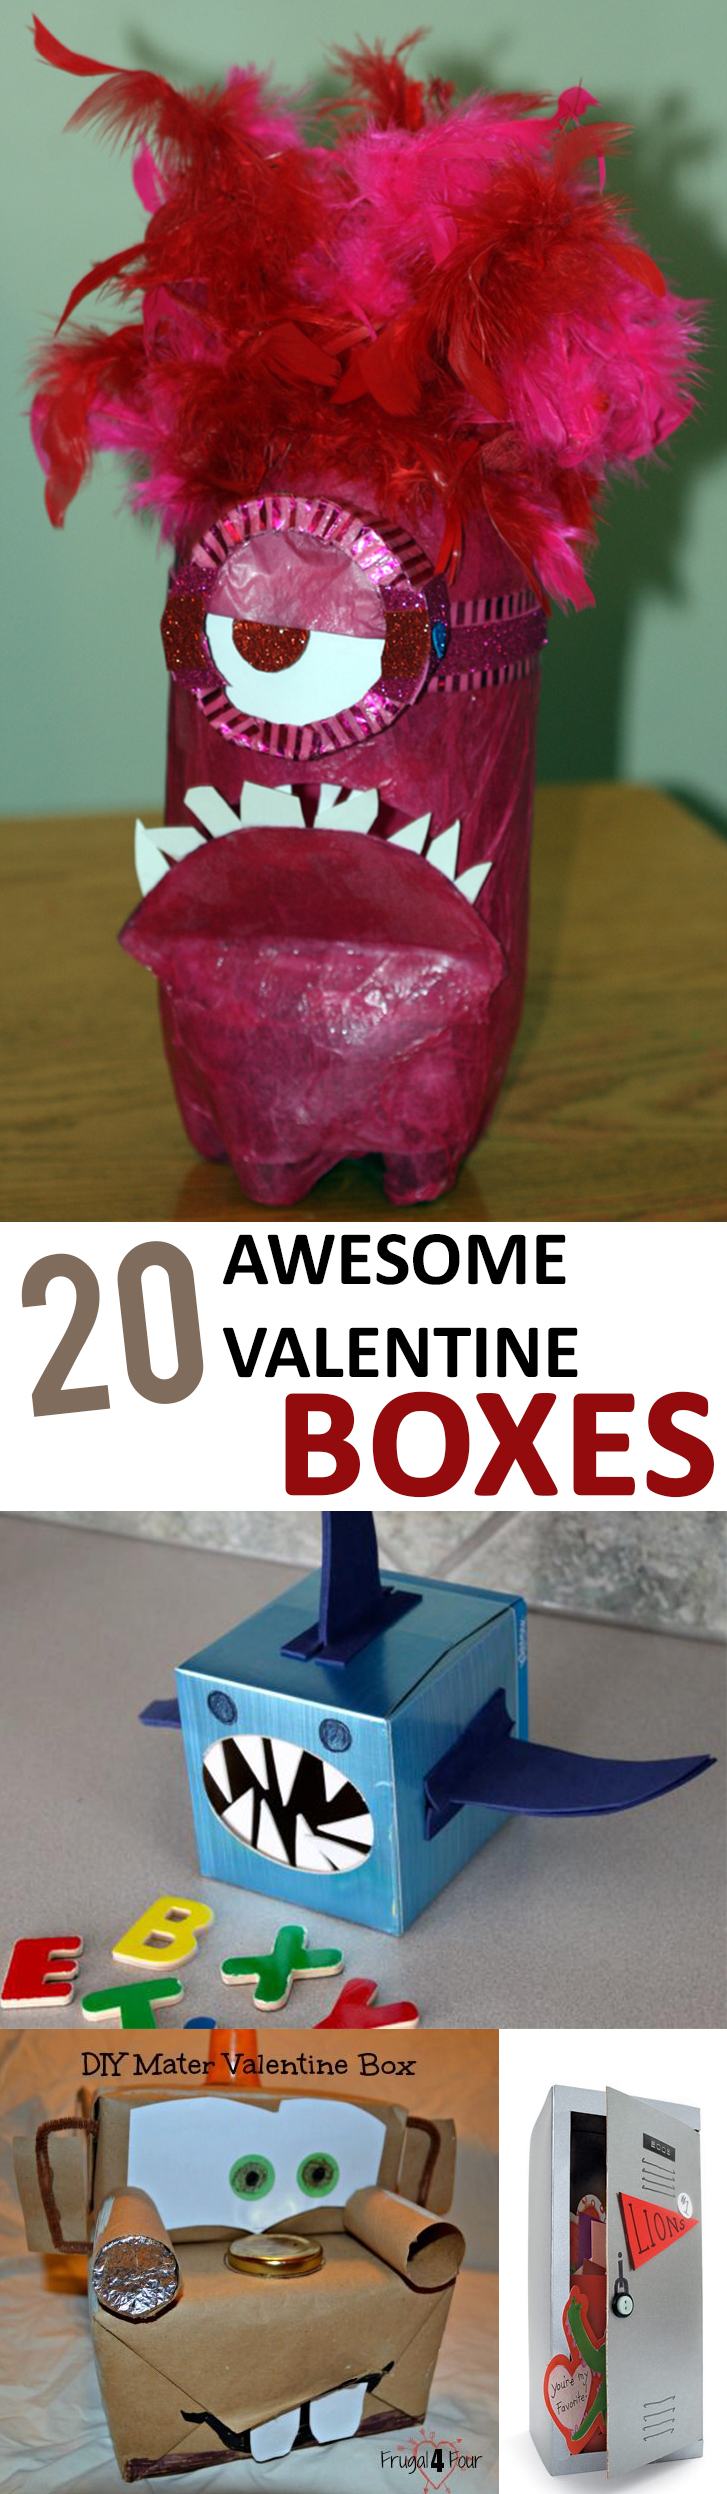 20 Awesome Valentine Boxes